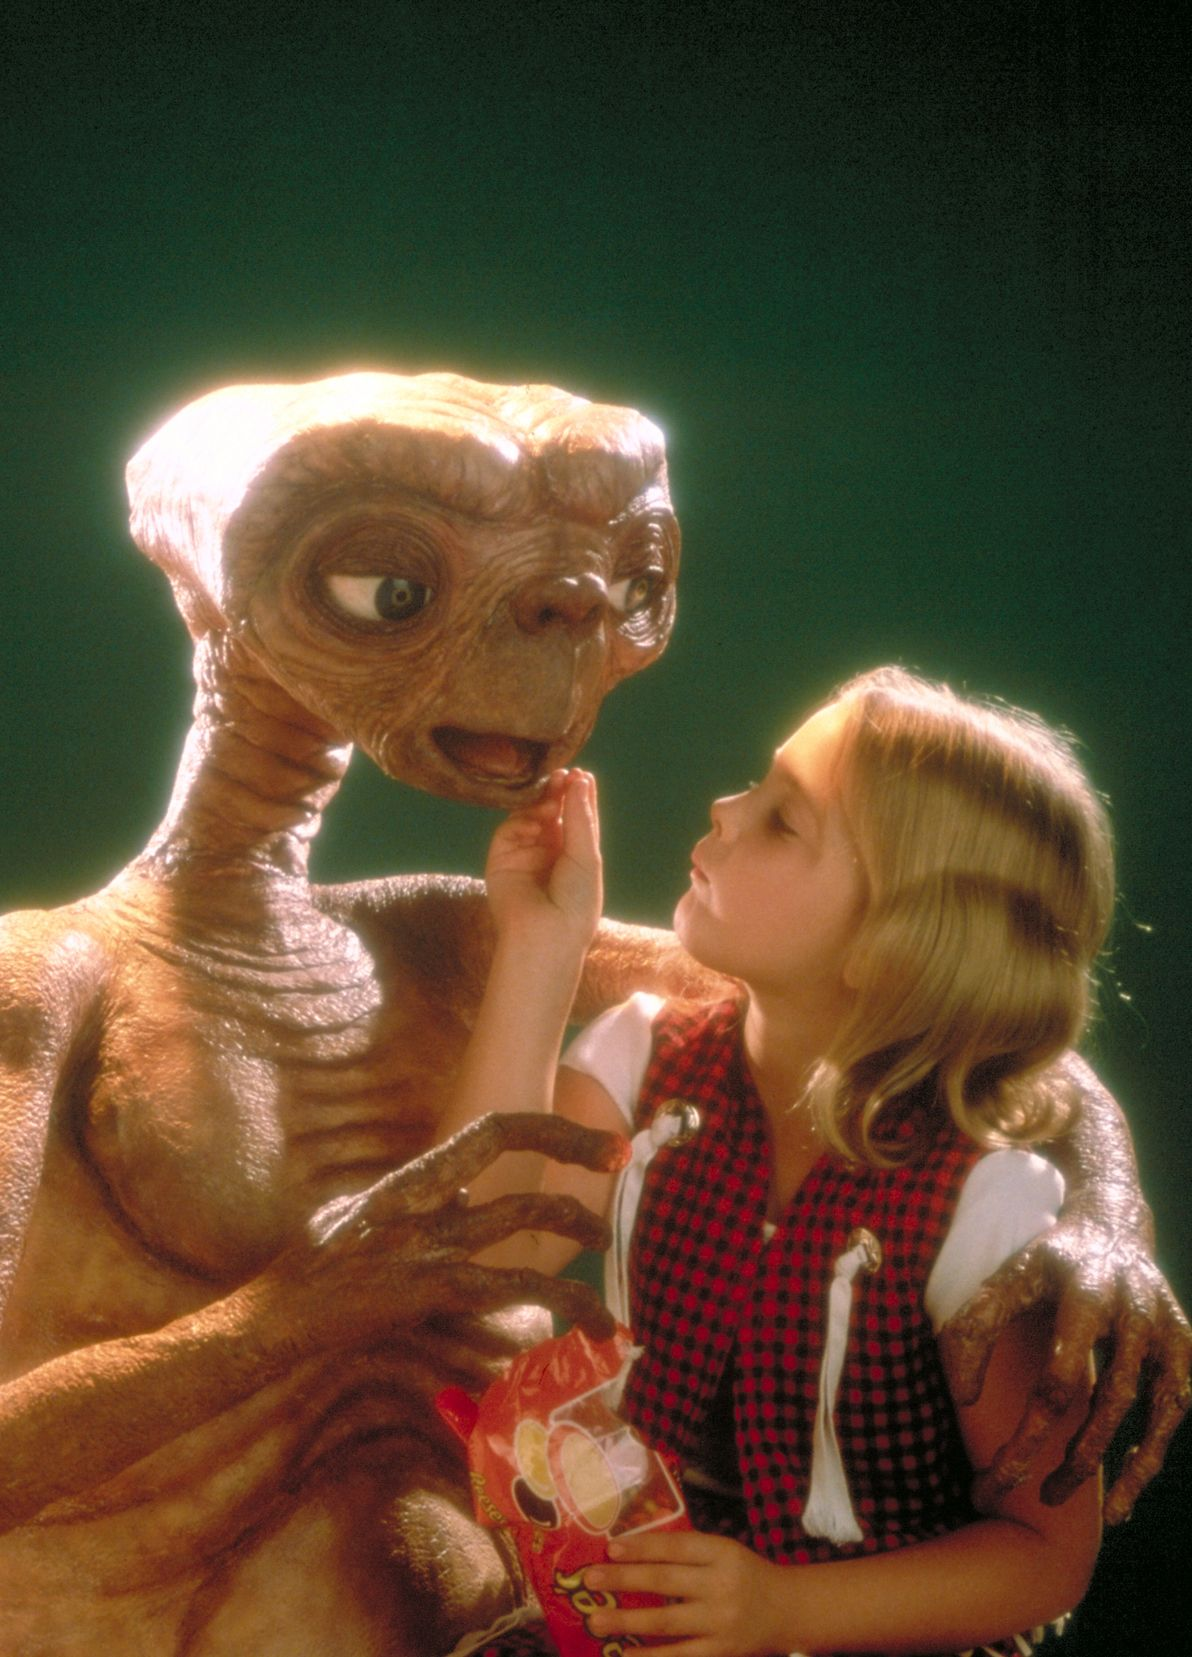 Drew Barrymore In E T The Extra Terrestrial 1982 Et The Extra Terrestrial Extra Terrestrial Drew Barrymore